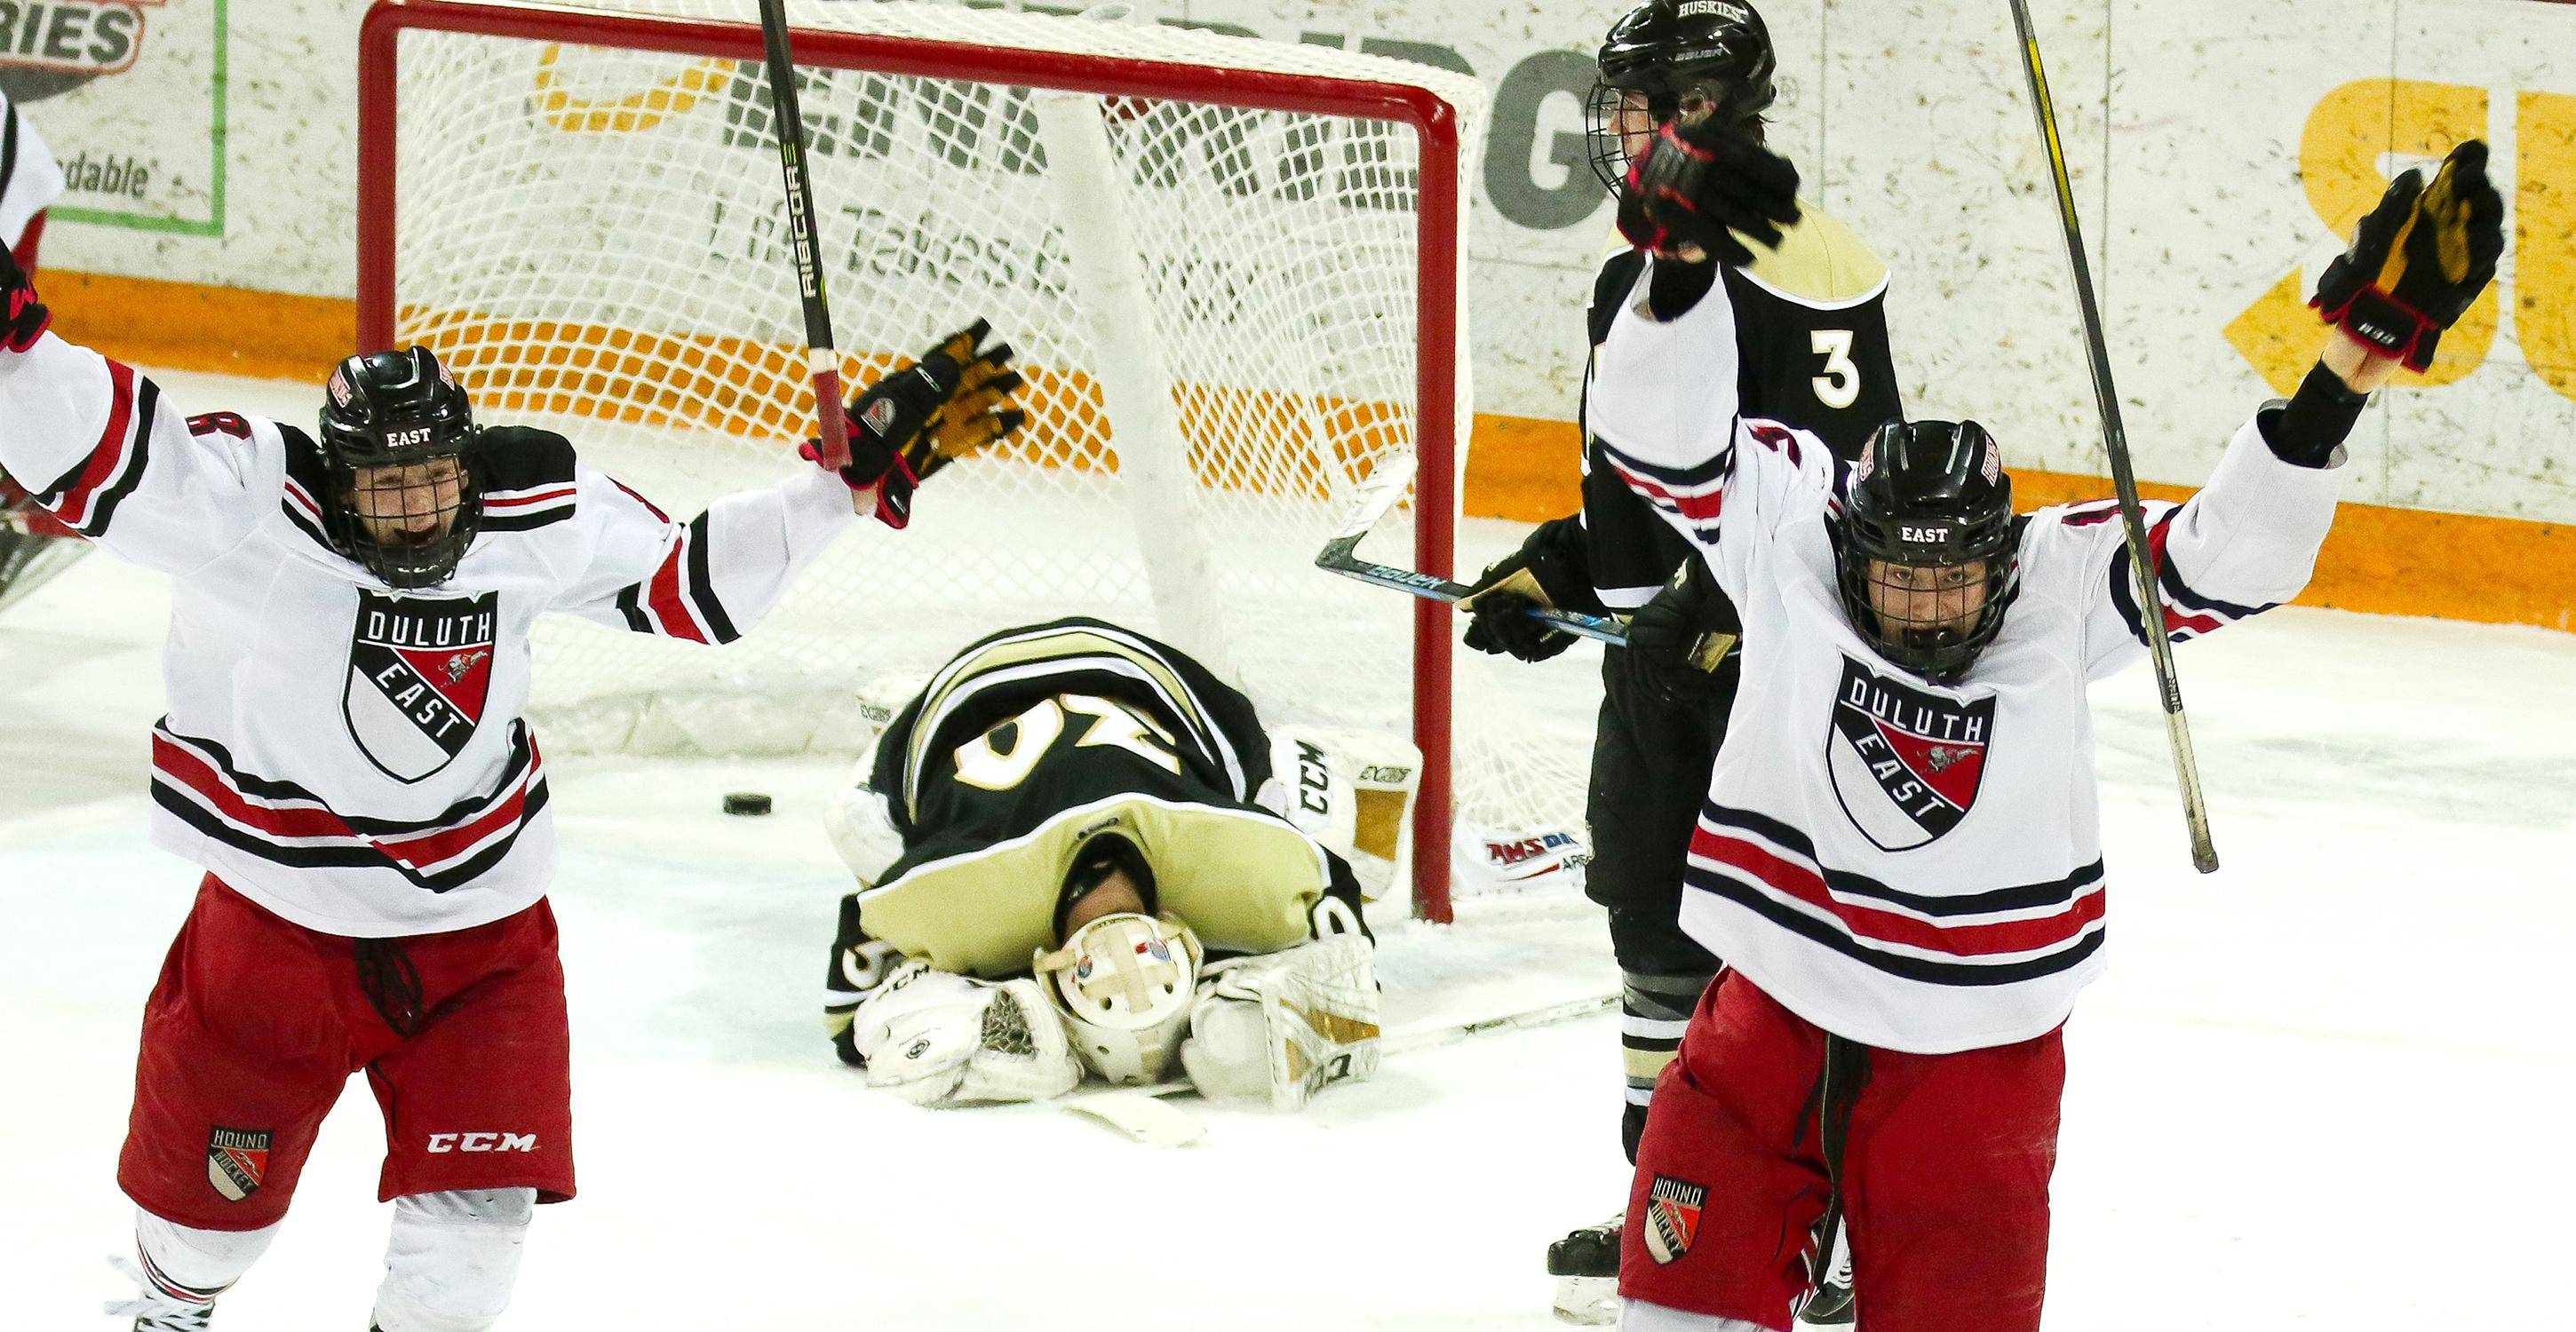 Duluth East's Ricky Lyle (right) and Austin Jouppi celebrate the Greyhounds' overtime game-winning goal Thursday in the Class 2A, Section 7 championship game against Andover. The Greyhounds won 3-2. Photo by Dave Harwig, Viewthroughmylens.net